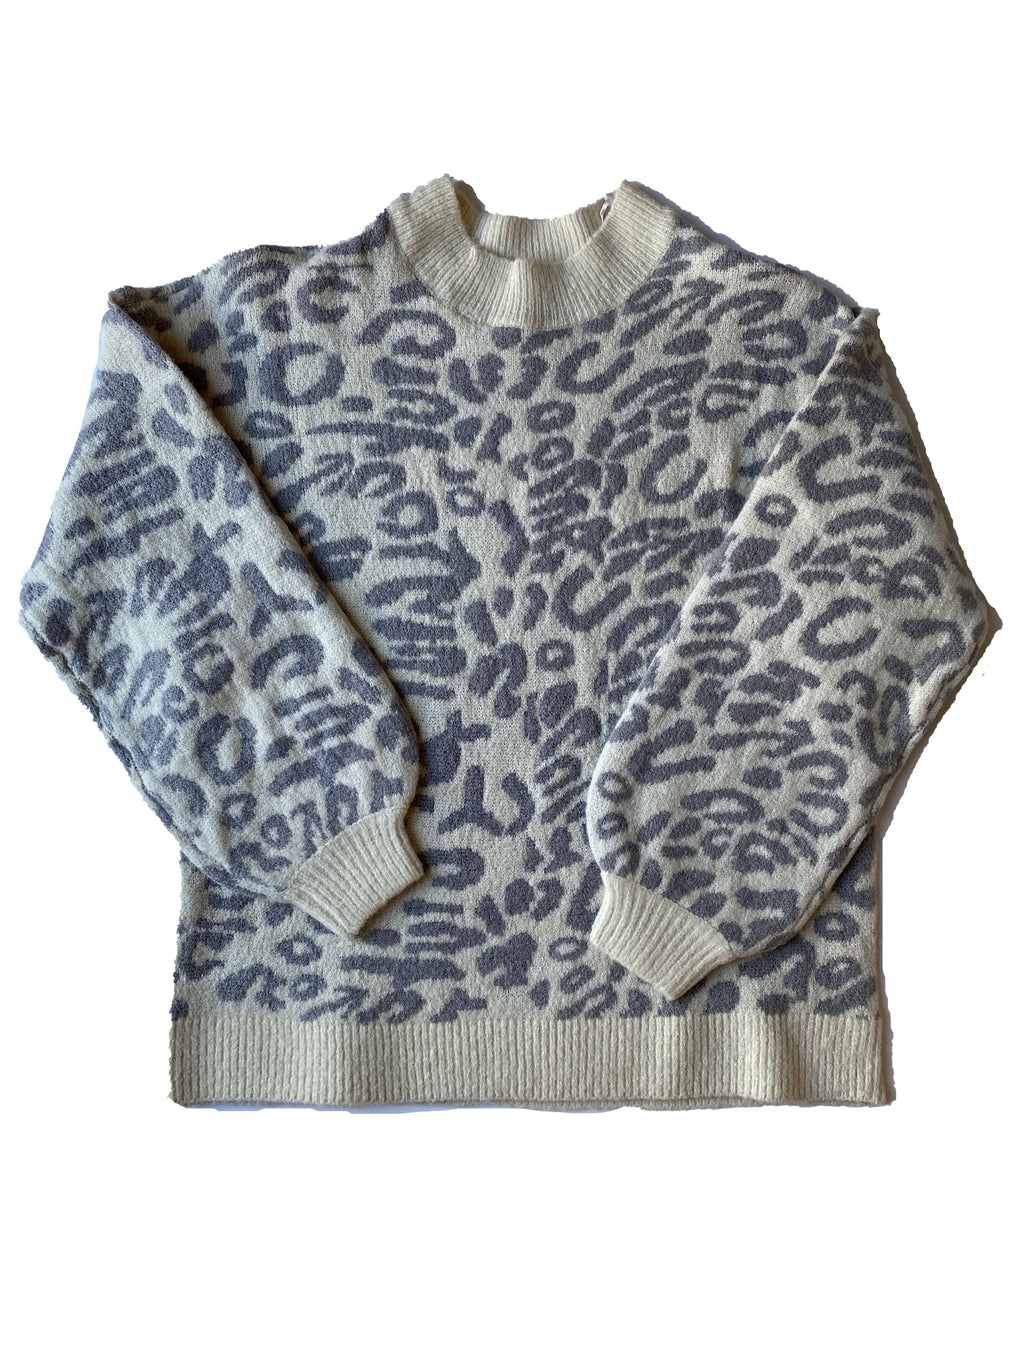 RD Style Leopard Sweater in Grey